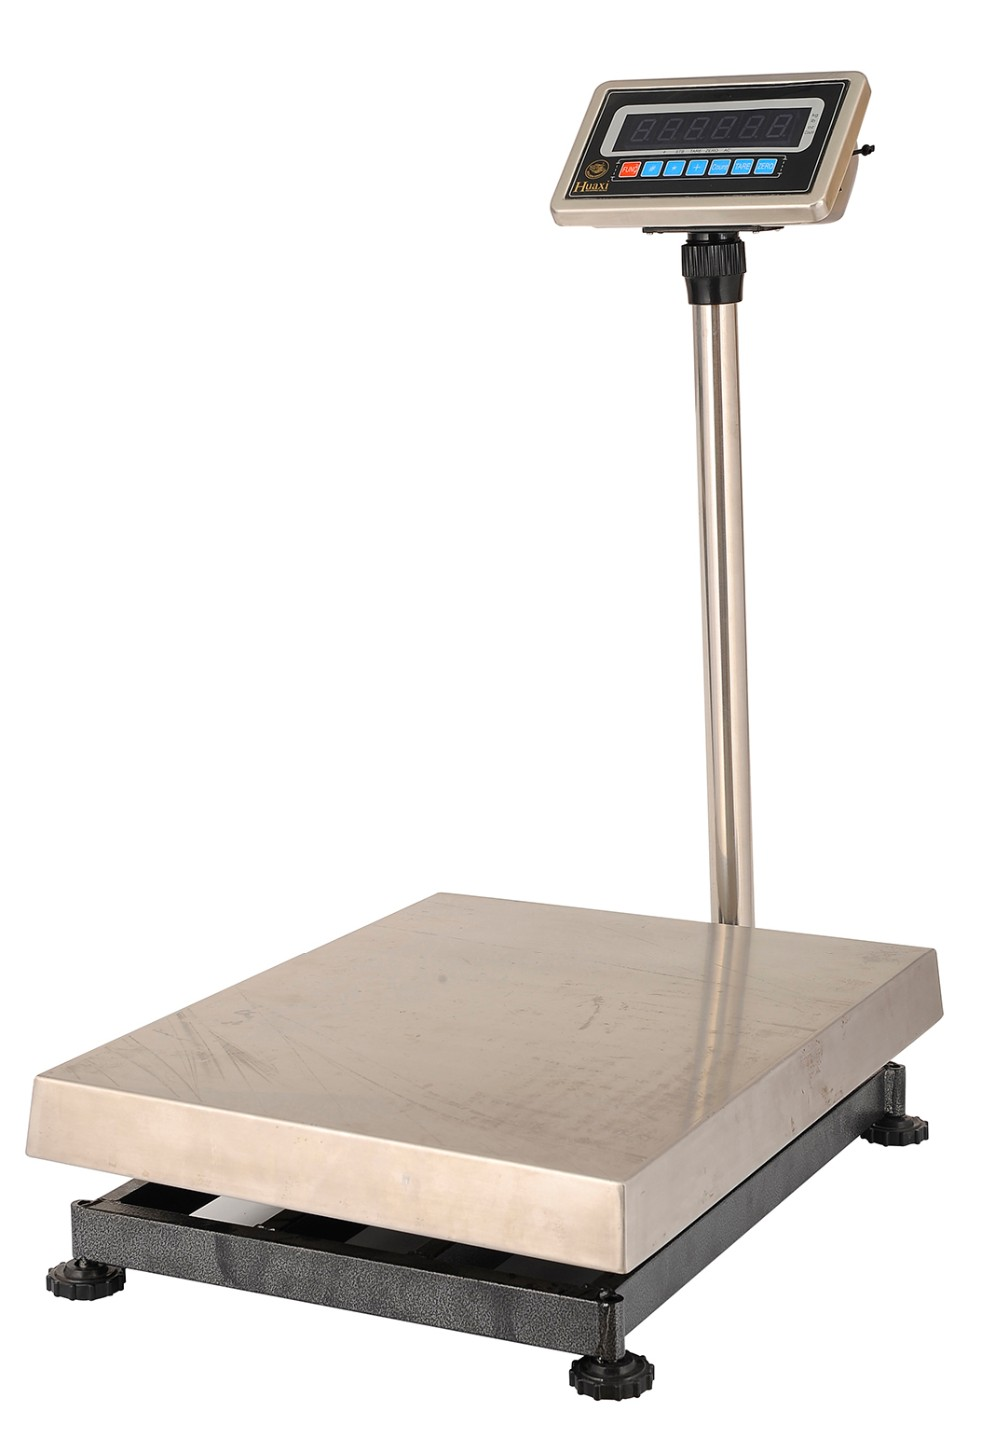 100kg 150kg 300kg 500kg Bench Scale Type A12 indicator platform scale Stainless steel Pan